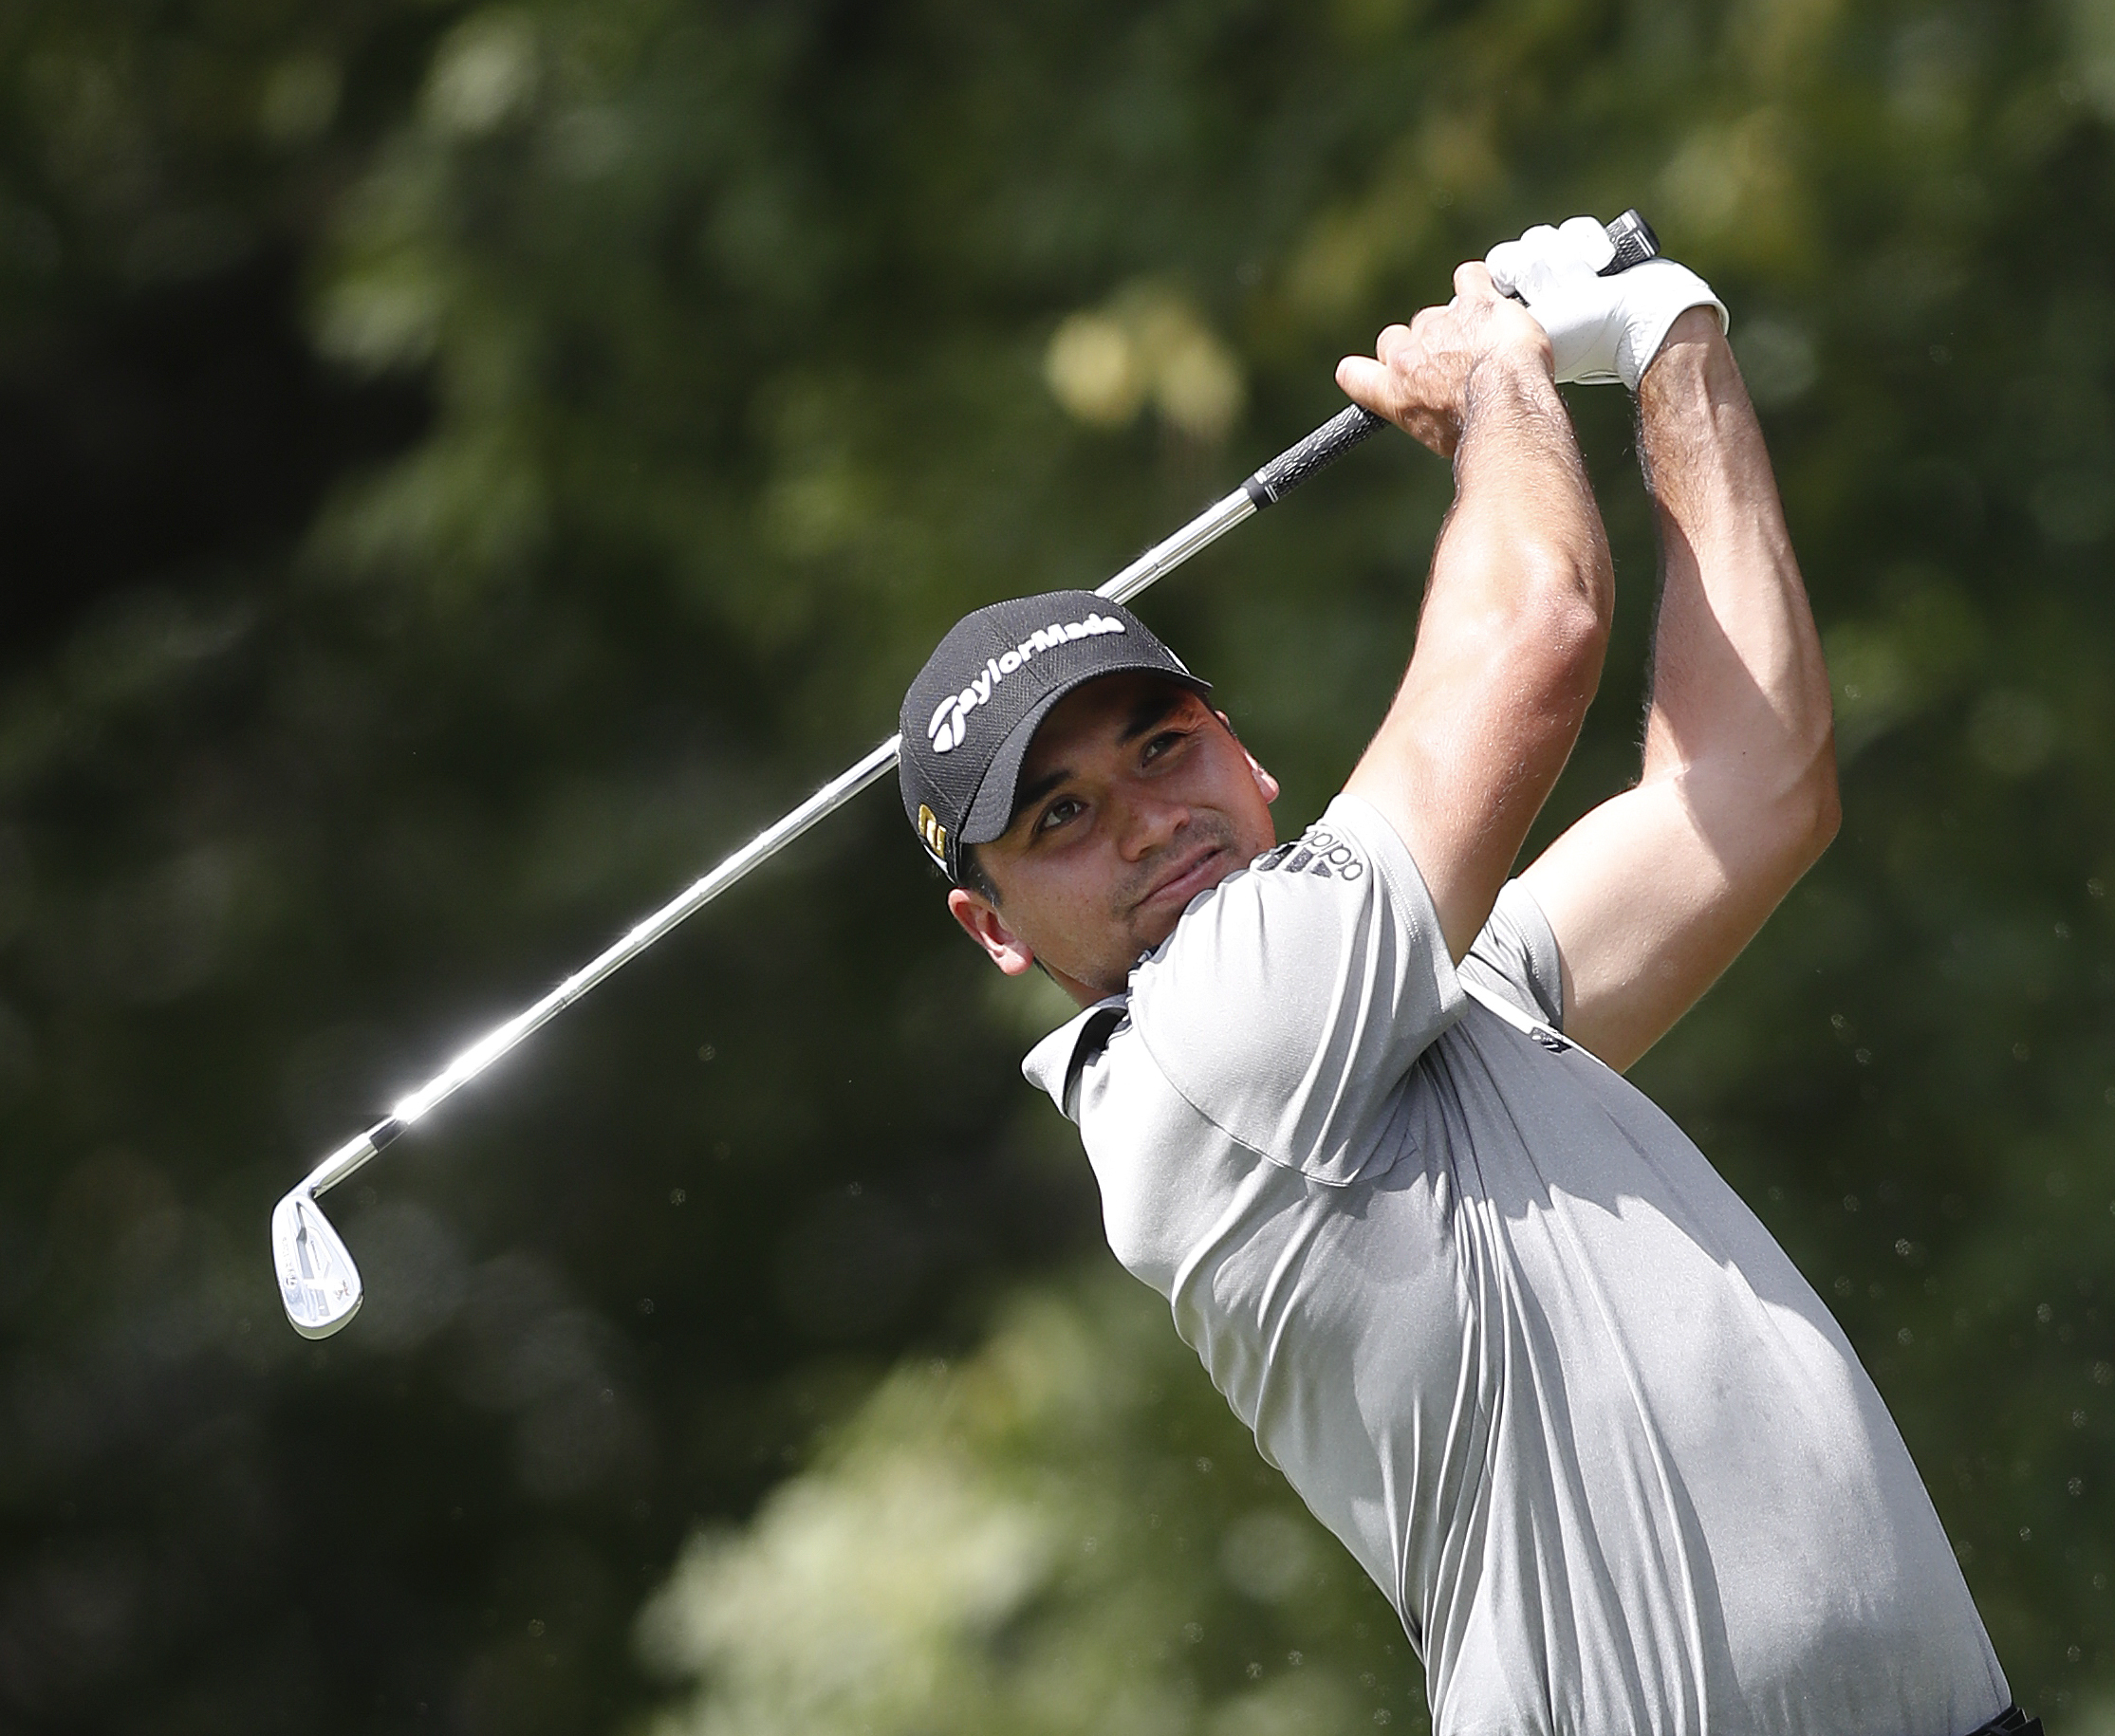 Jason Day hits from the tee on the second hole during the second round of play at the Tour Championship golf tournament at East Lake Golf Club Friday, Sept. 23, 2016, in Atlanta. (AP Photo/John Bazemore)